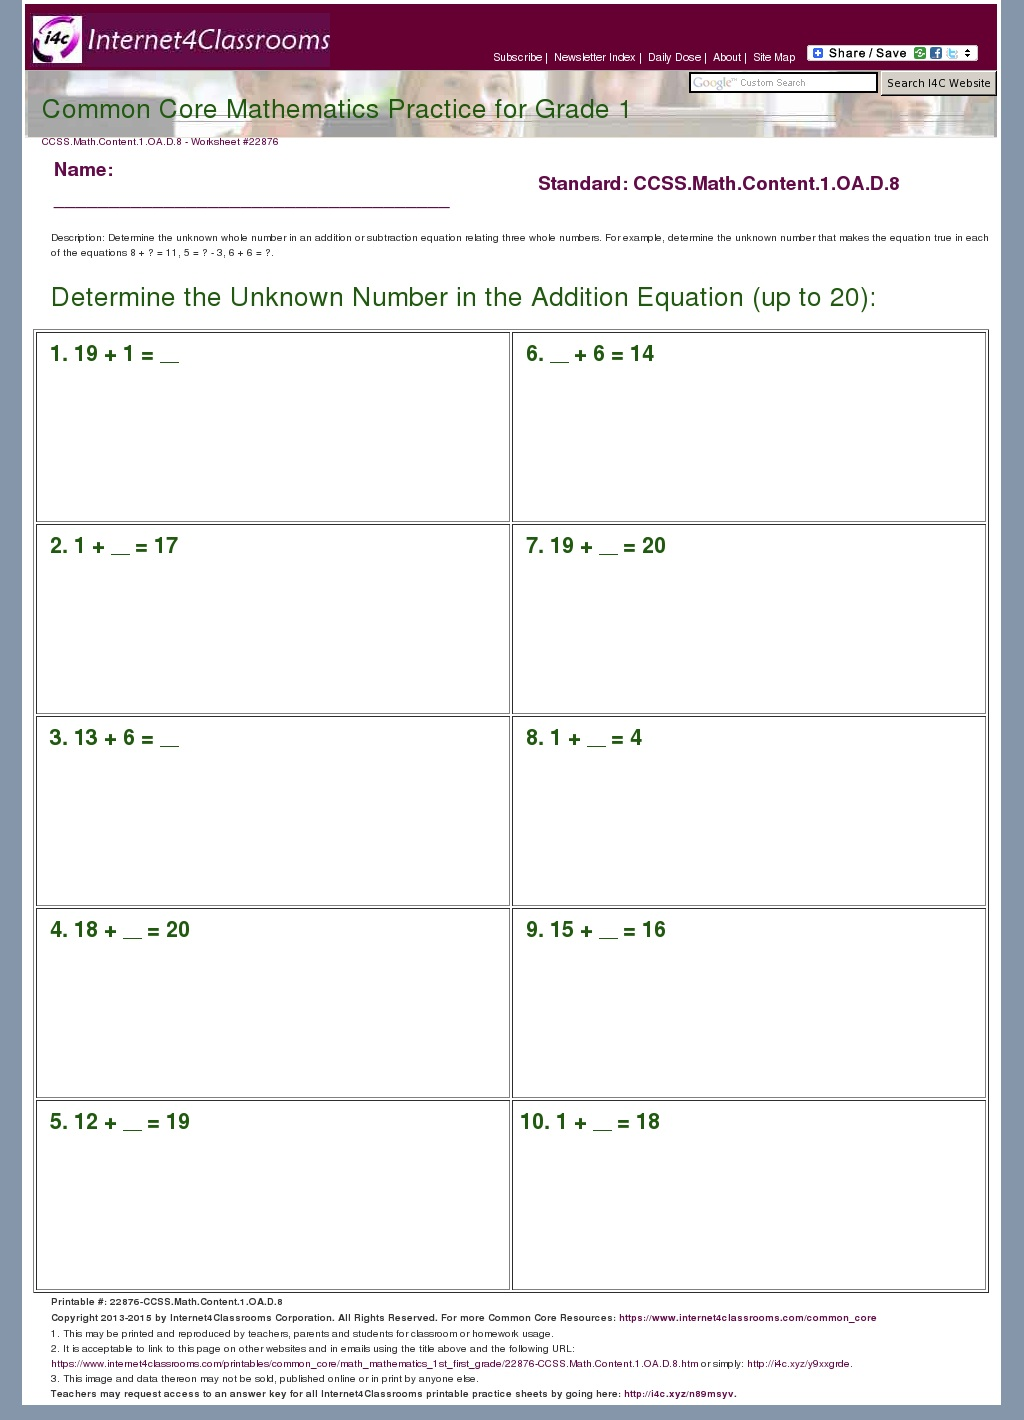 Math Worksheets Missing Number Pdf Kindergarten Tracing Numbers Missingmber Mathmbers For First Grade Printble Sheets Sequences Year Printable Tests Kids Worksheet Games Toddlers moreover D A F Ba F Ee further Xinequality Ex Gif Pagespeed Ic Irp Jh Frg besides Maxresdefault also Missing Integers Large. on first grade math equation worksheets